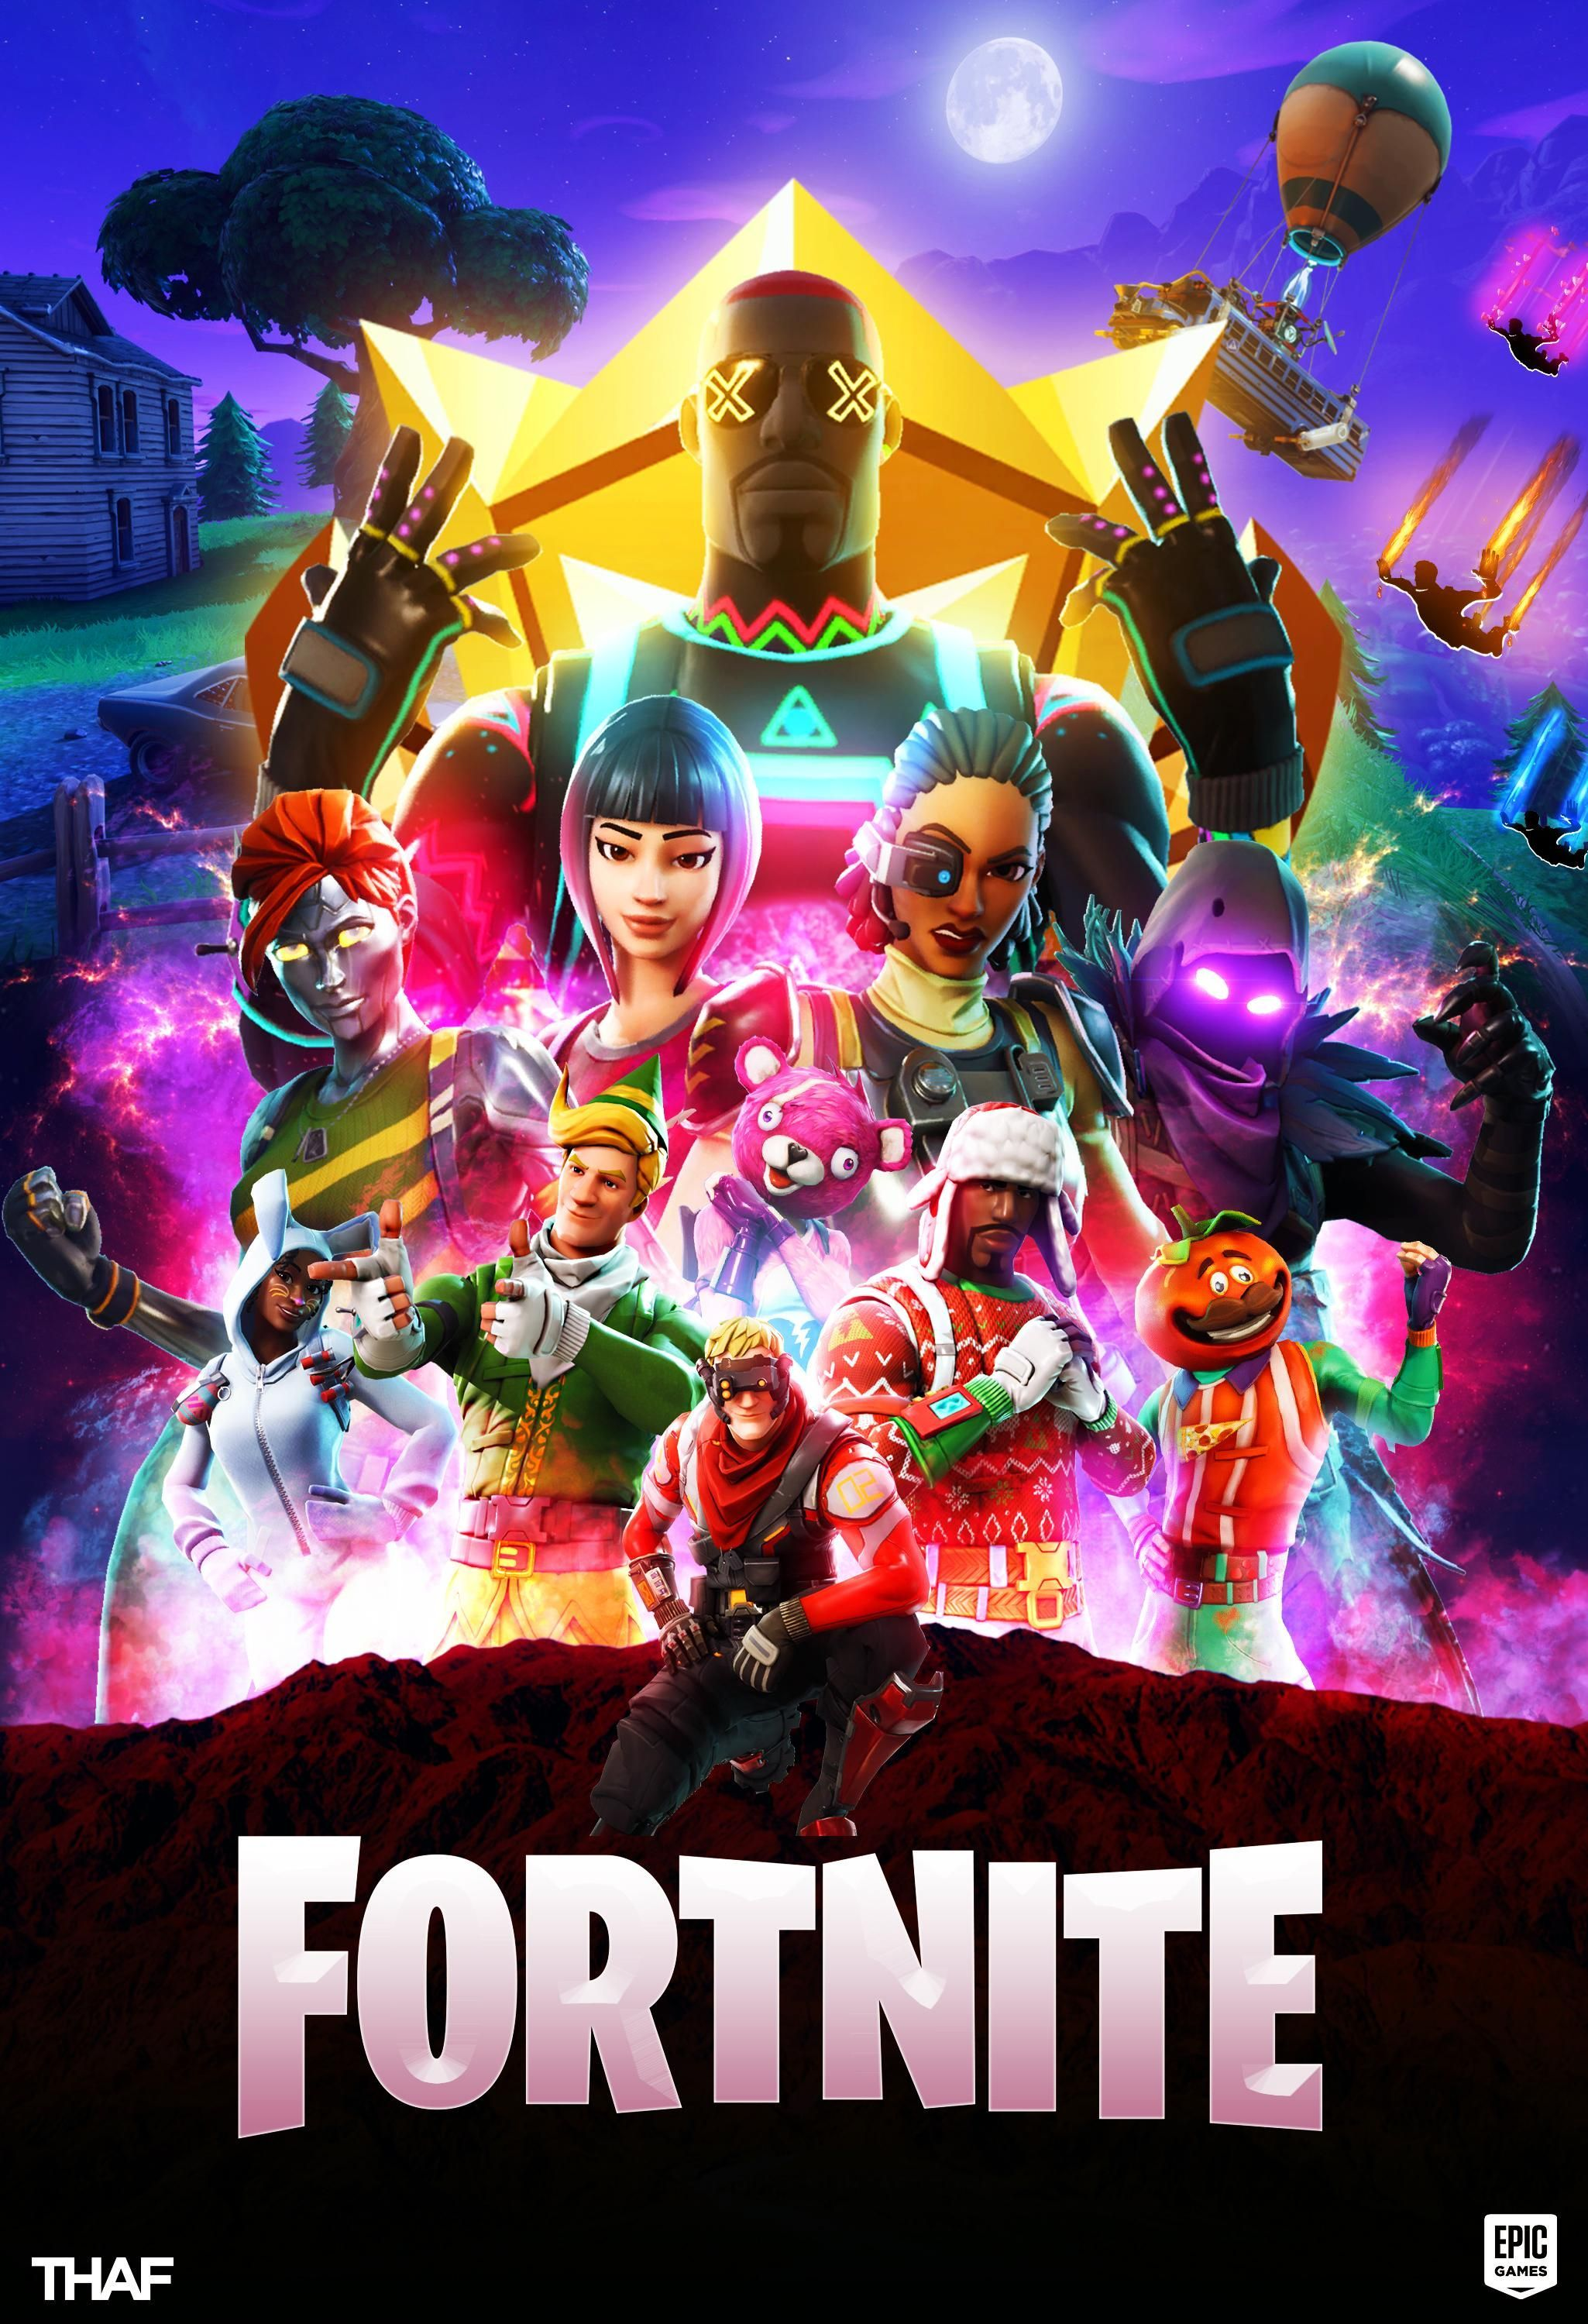 Made This Poster For Fortnite After The Avengers Crossover Was Announced Hope Y In 2020 Gaming Wallpapers Game Wallpaper Iphone Epic Games Fortnite